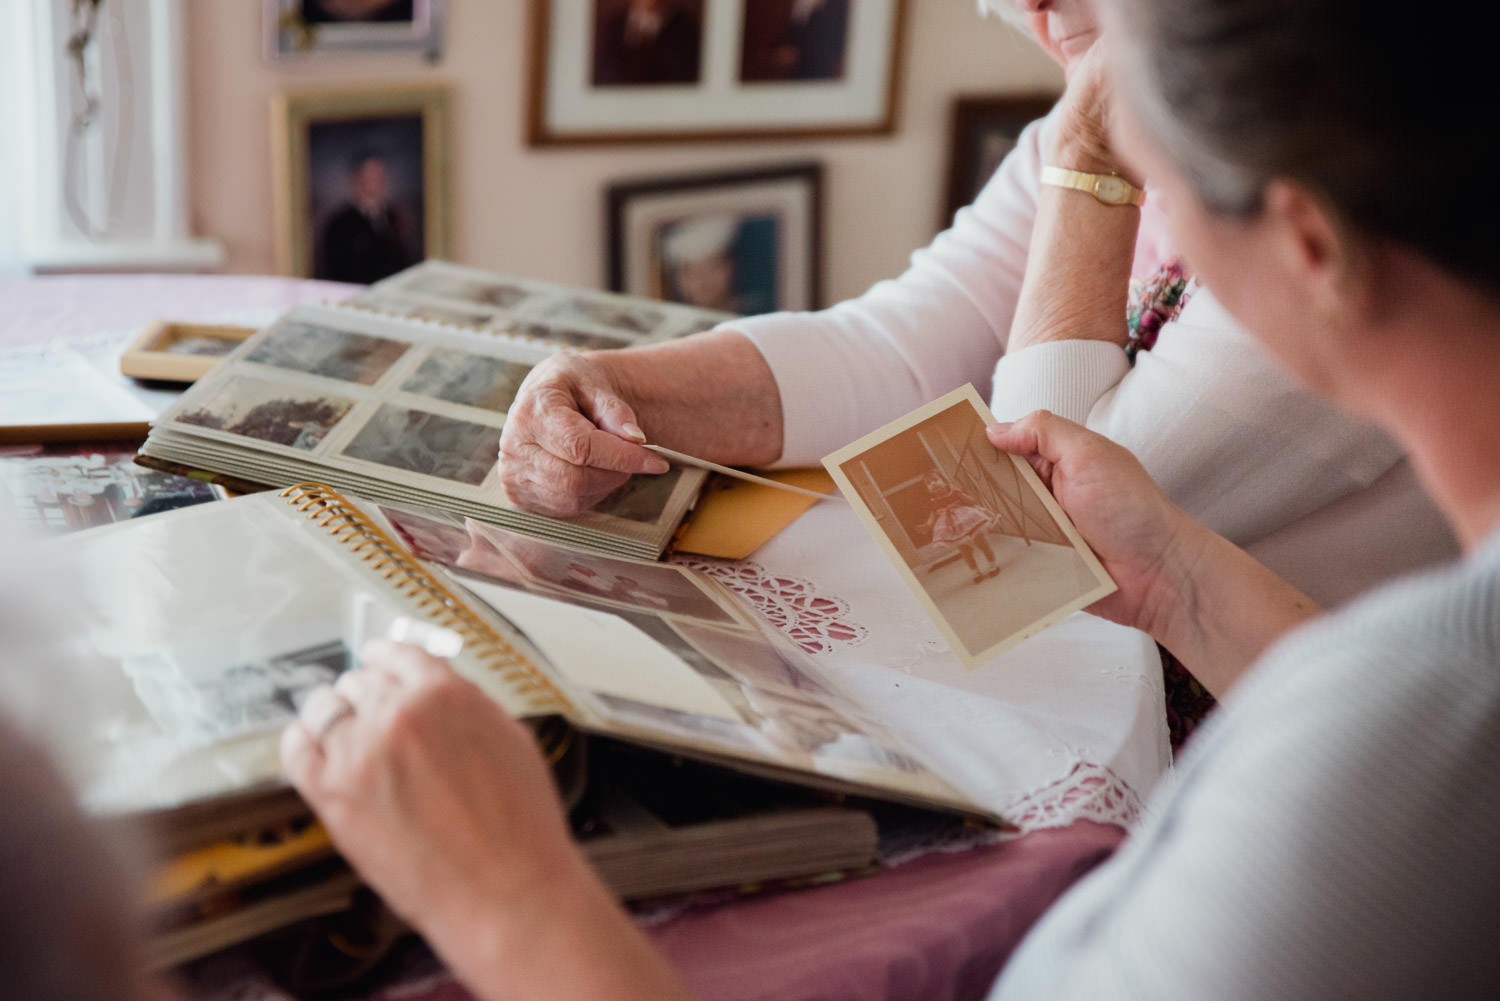 Looking through family photographs.